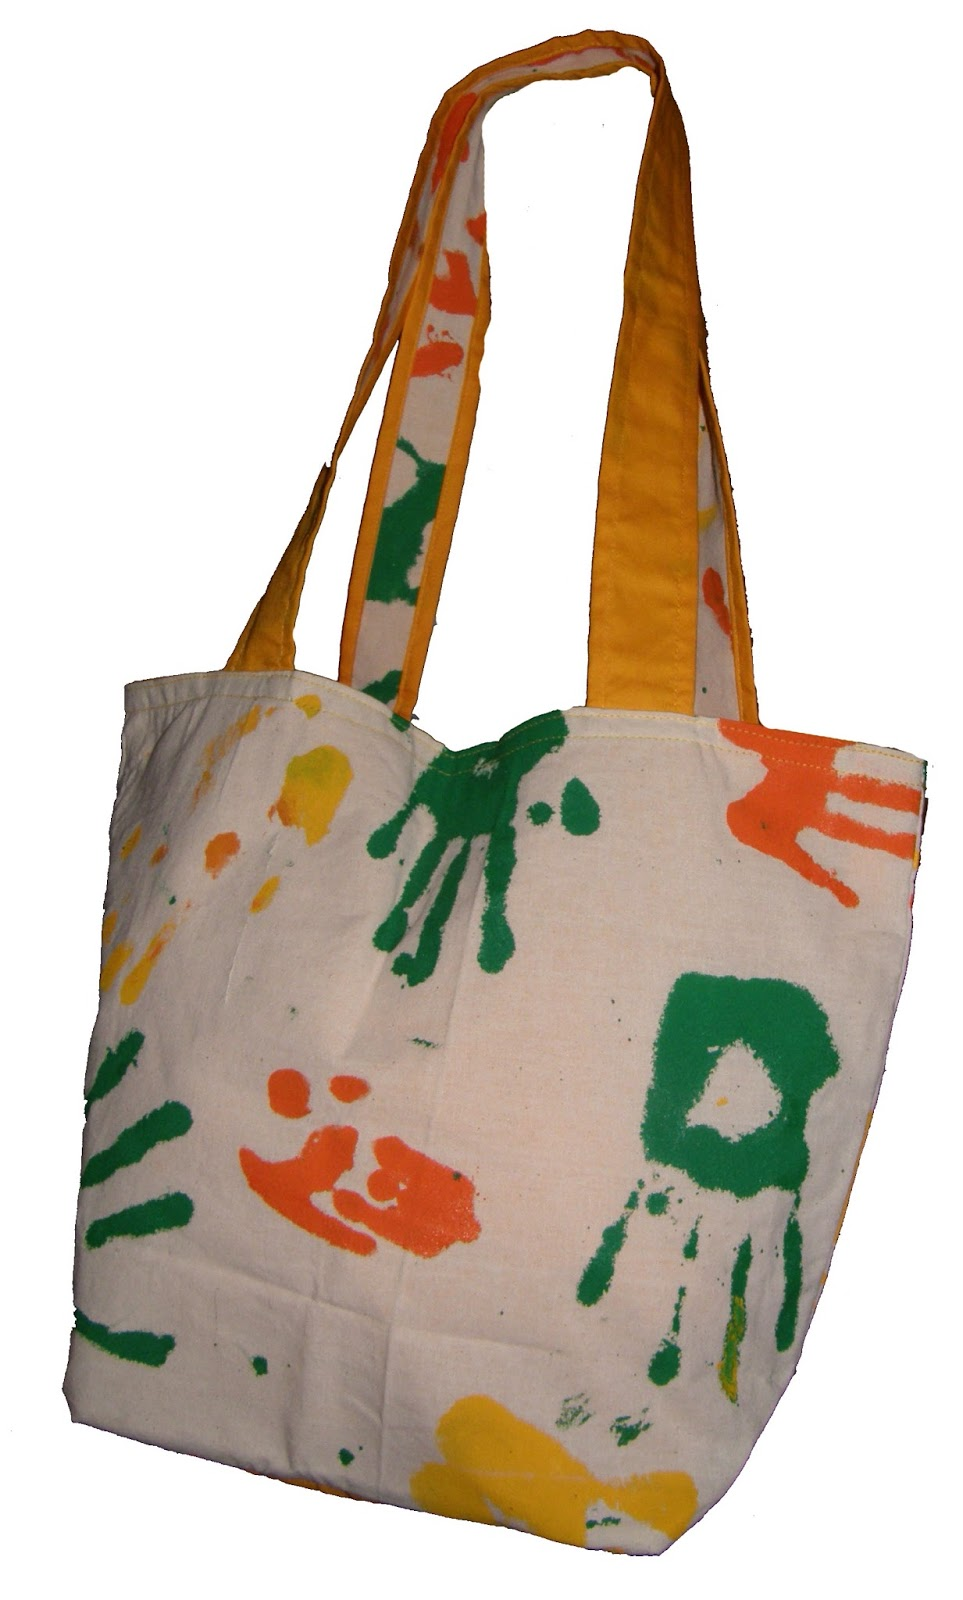 Customised bags | The UseMeAgain cloth bags from eCoexist